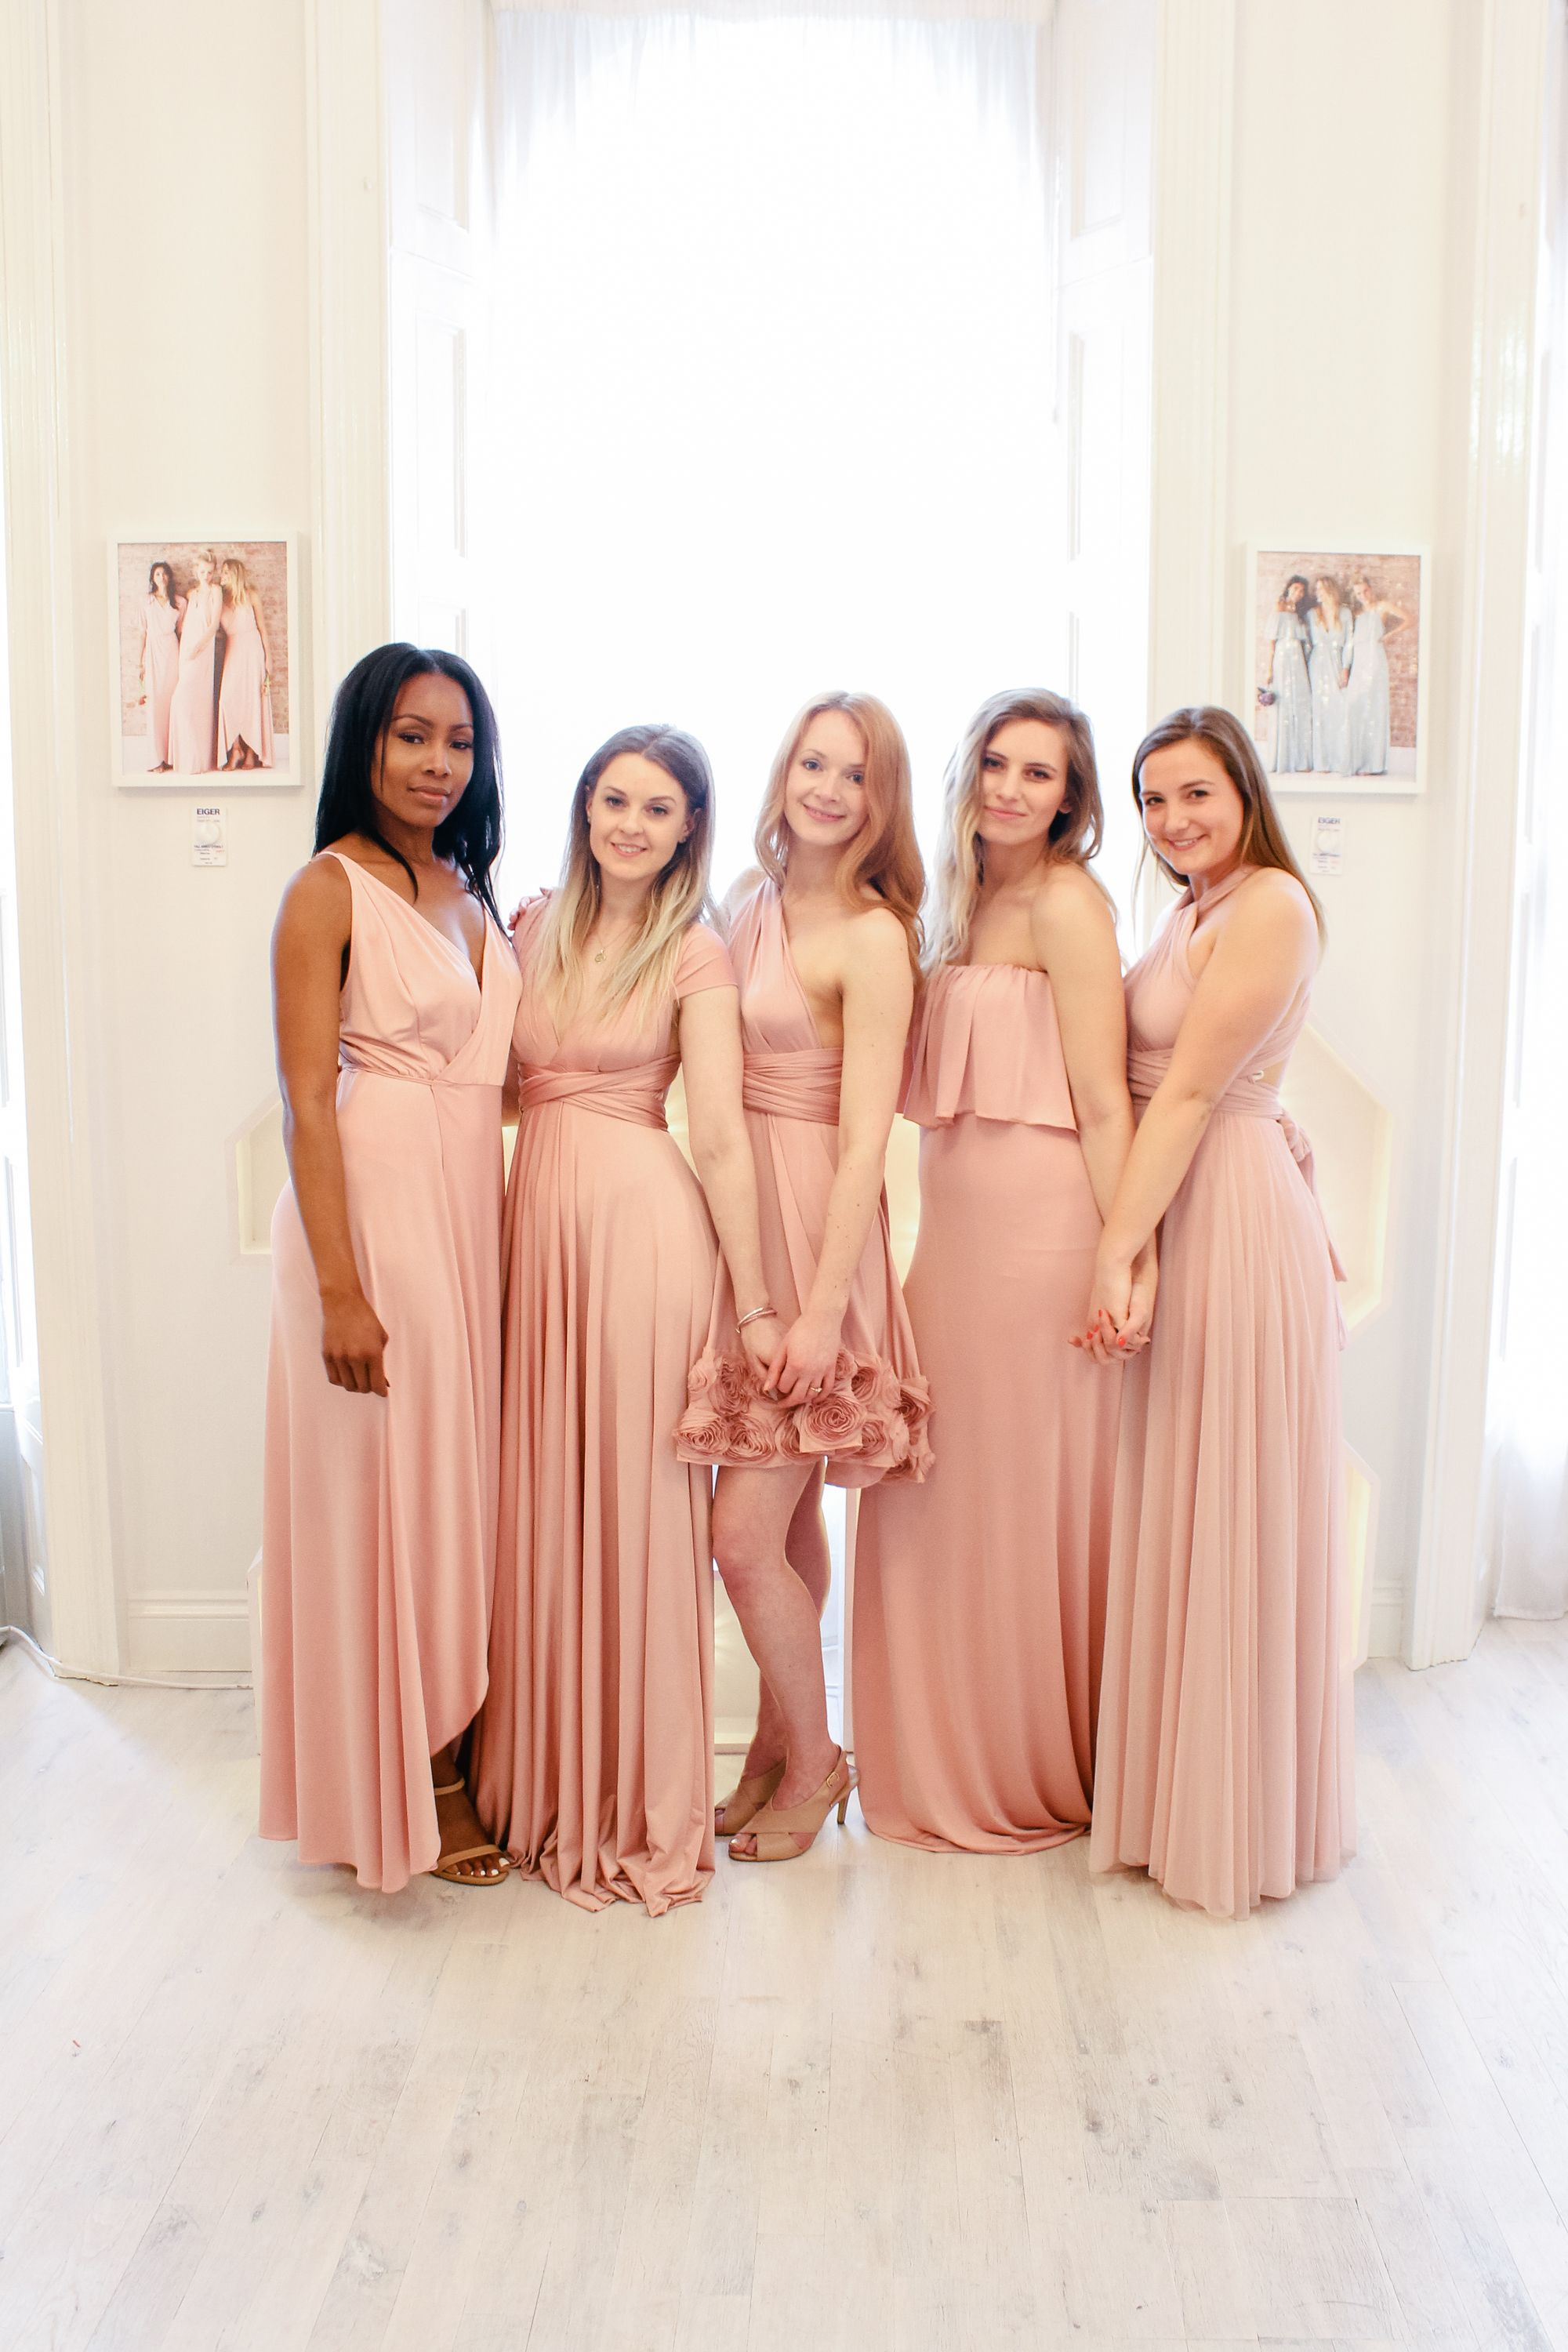 fc07239111a0 Mix & match blush pink bridesmaid dresses by twobirds Bridesmaid | Lots of  different style dresses in the same colour